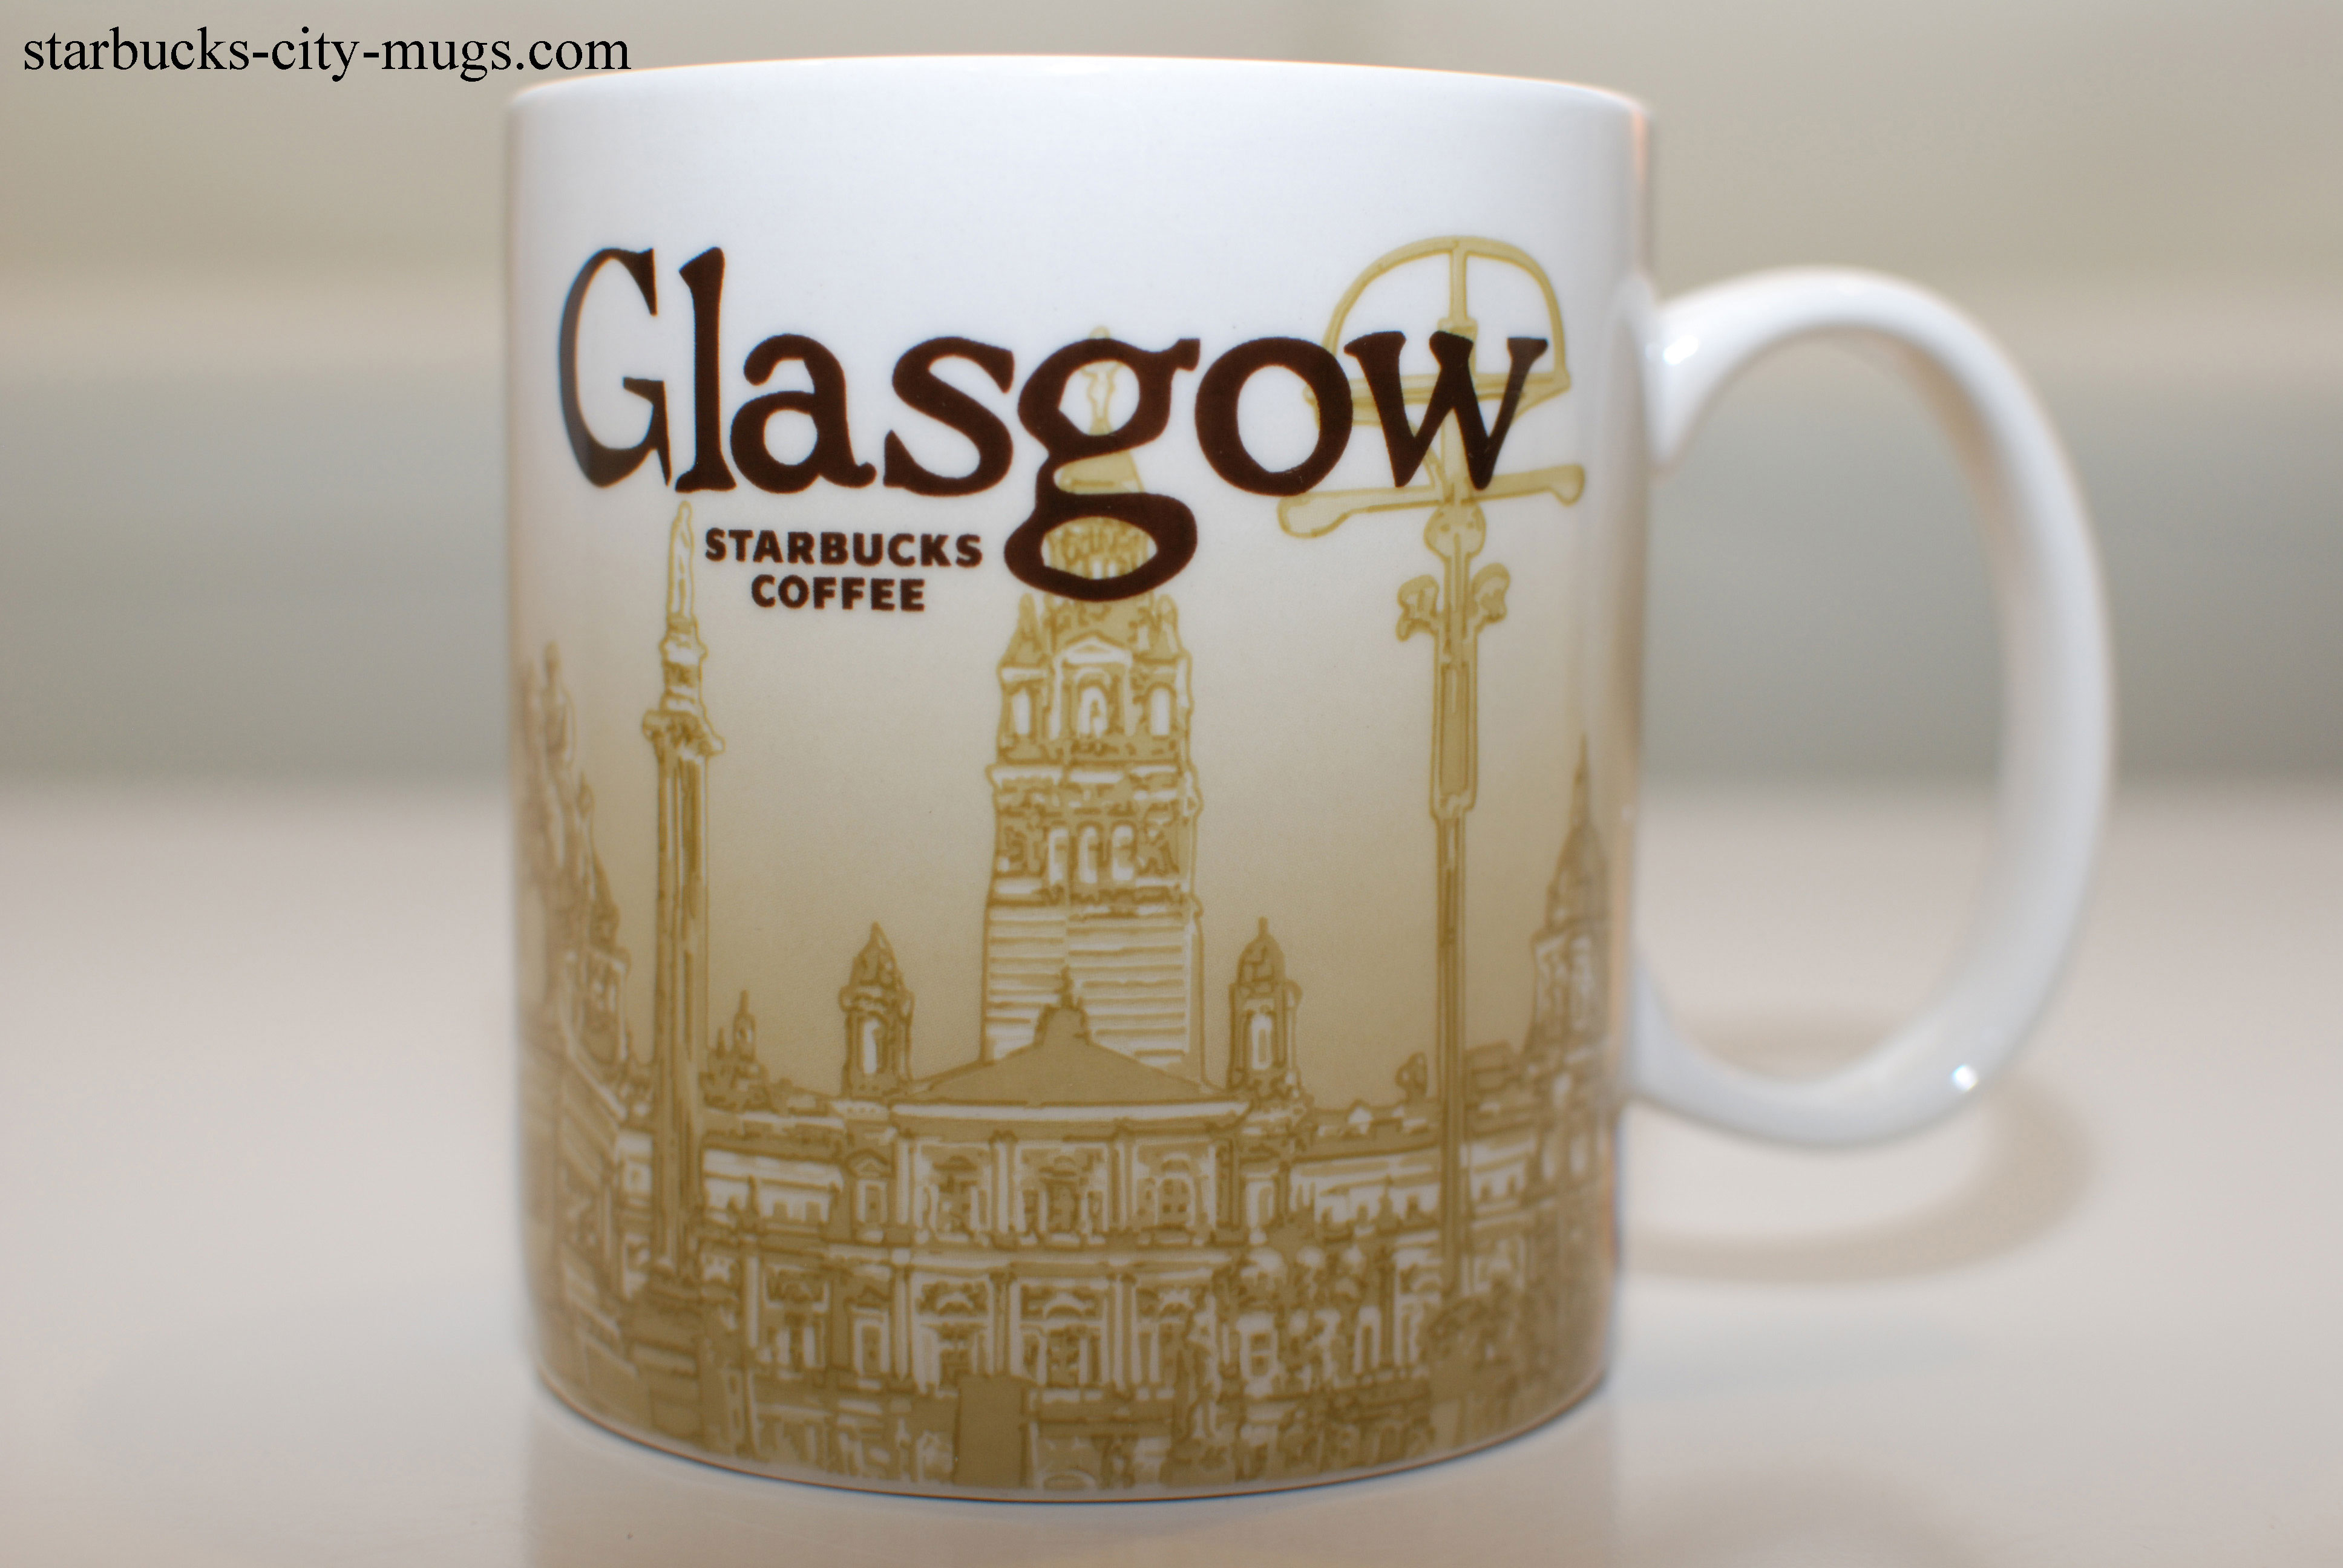 Glasgow | Starbucks City Mugs